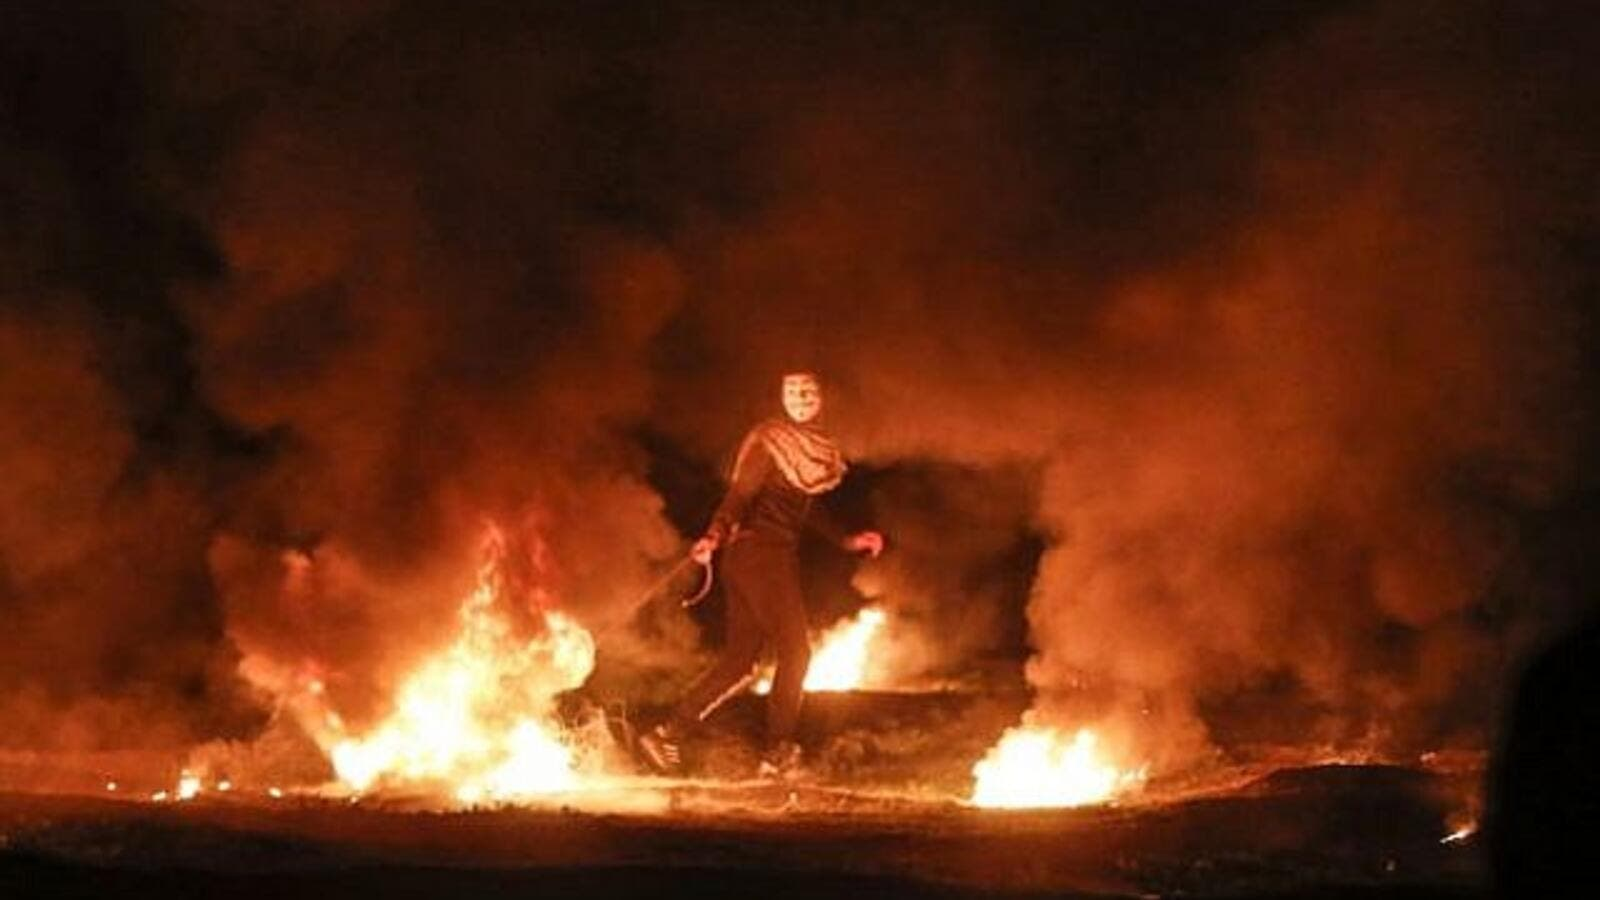 A masked Palestinian demonstrator pulls a burning tire during a night demonstration near the fence along the border with Israel, east of Gaza City, on February 11, 2019. (AFP/ File)